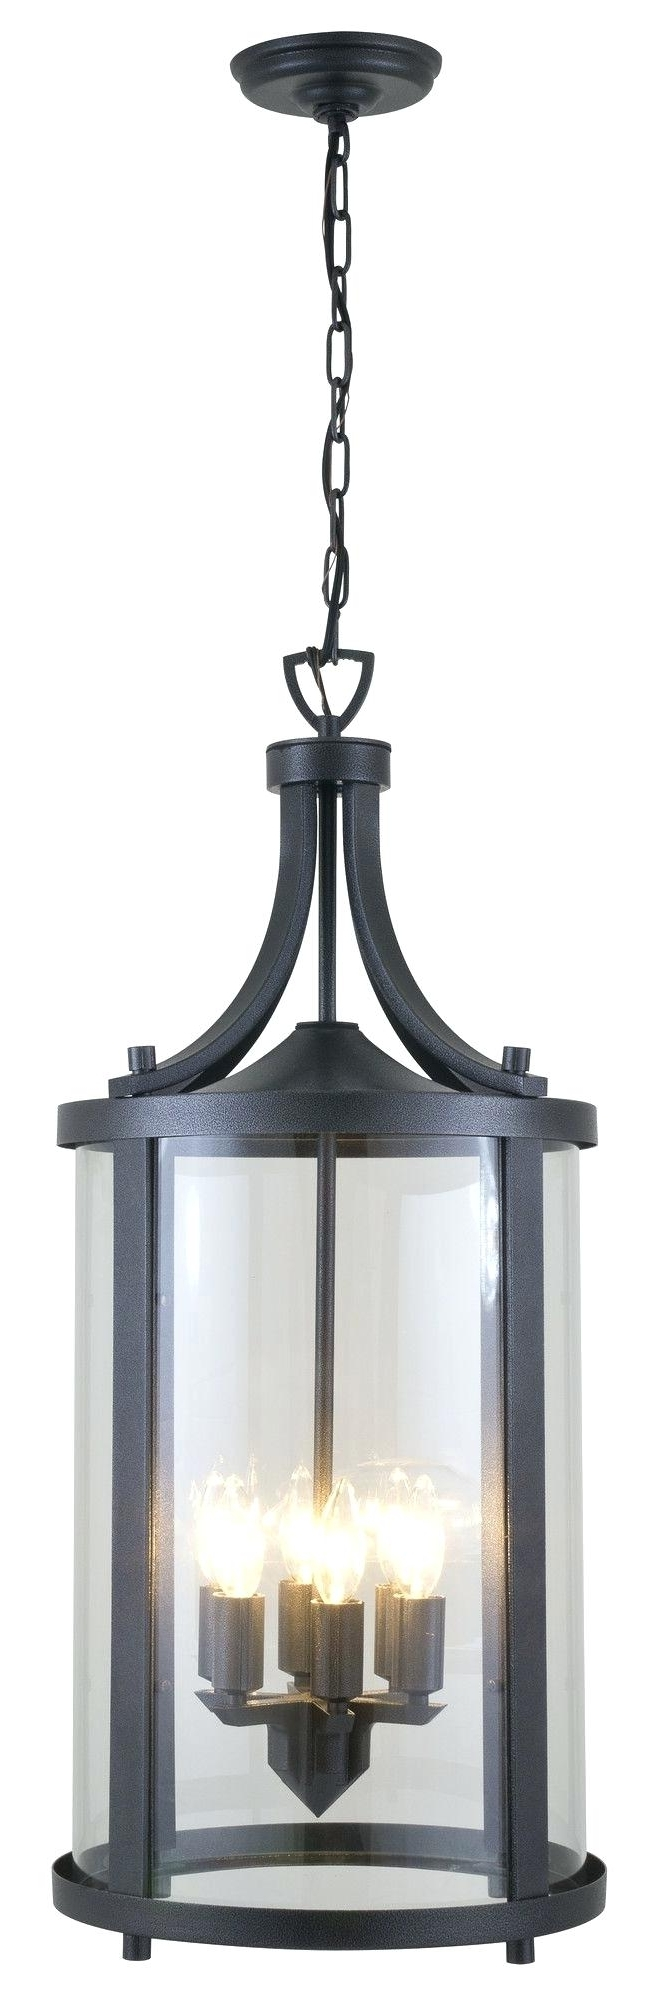 Current Outdoor Hanging Lanterns For Candles Patio Australia – Biophilessurf With Regard To Outdoor Hanging Lanterns From Australia (View 1 of 20)